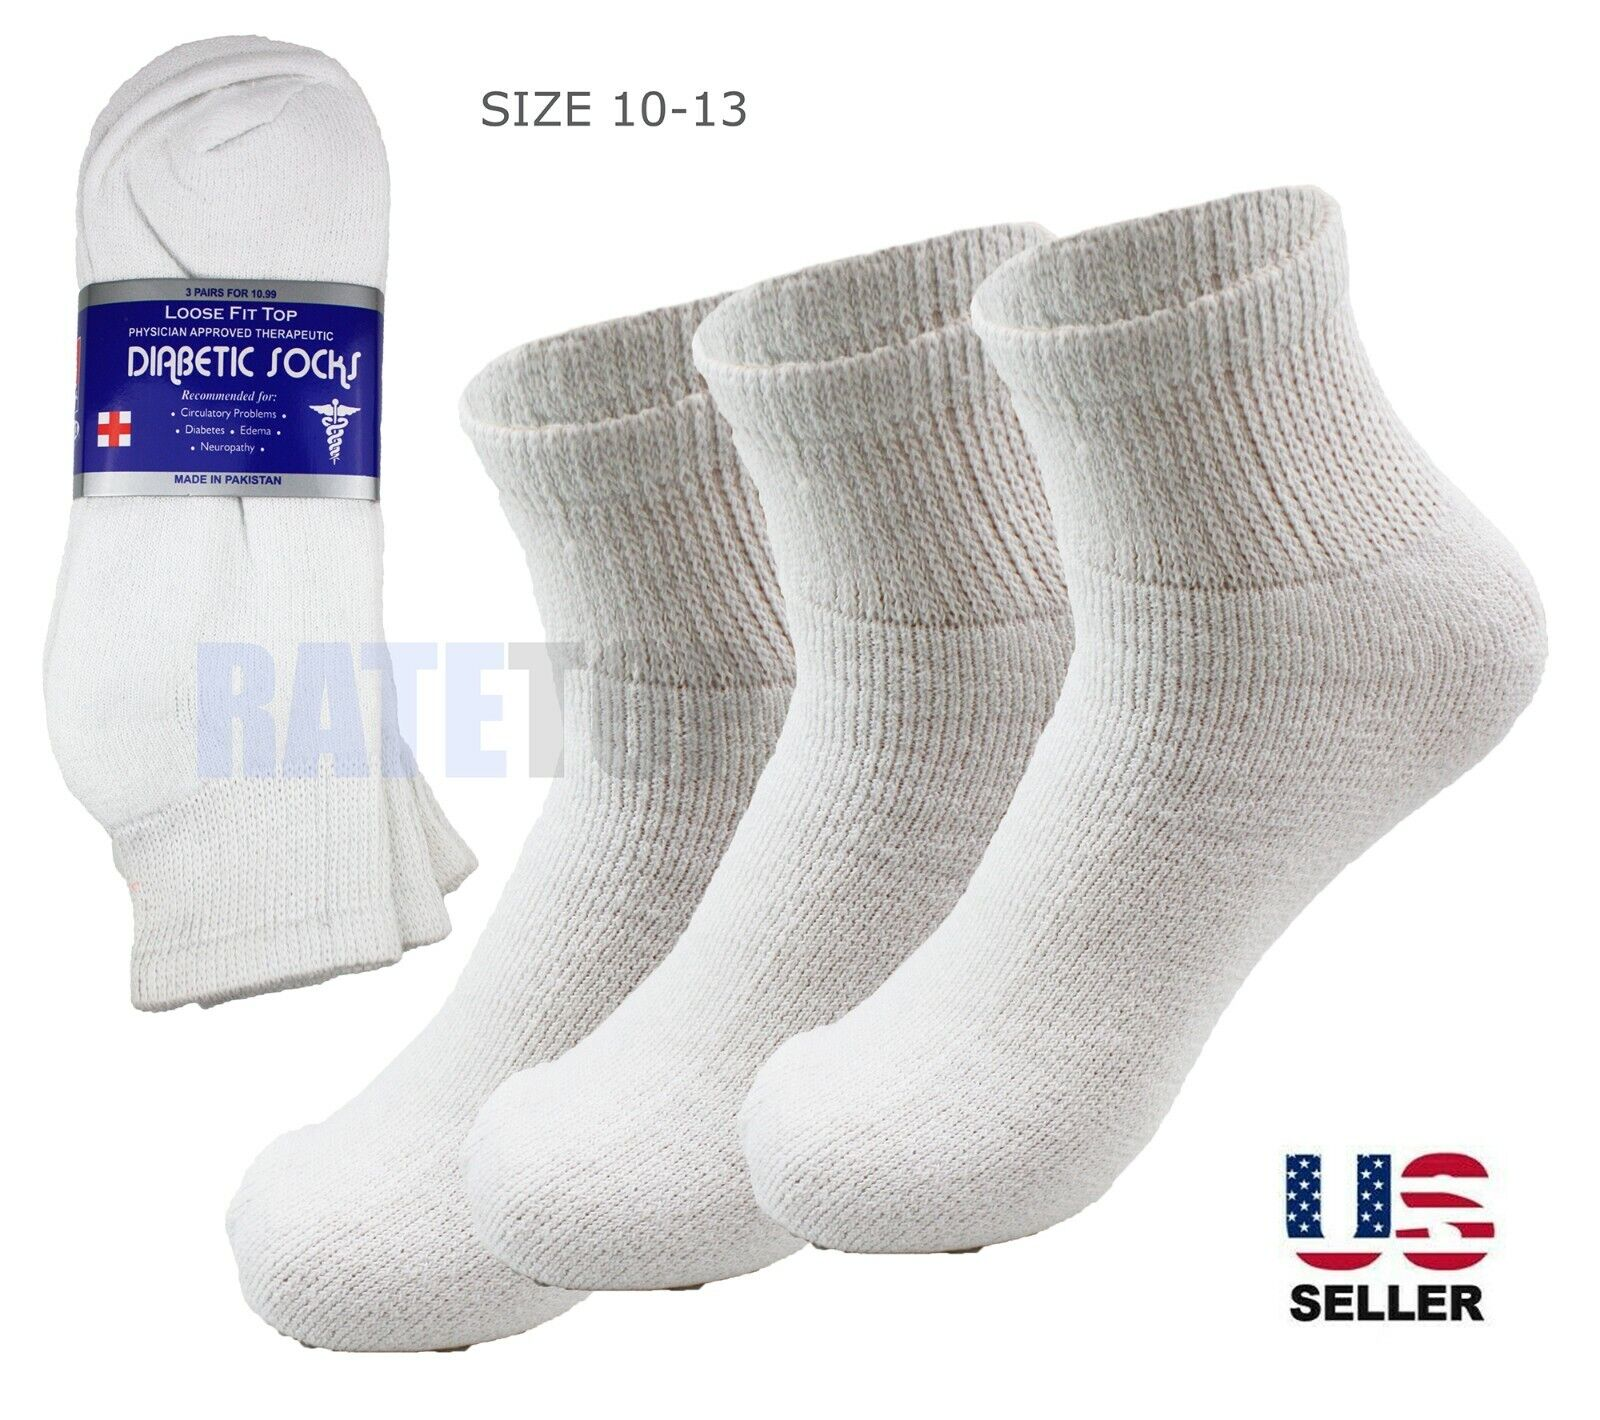 Lot 3 Pairs Mens Diabetic Ankle Quarter Circulatory Socks Health Cotton 10-13 Clothing, Shoes & Accessories